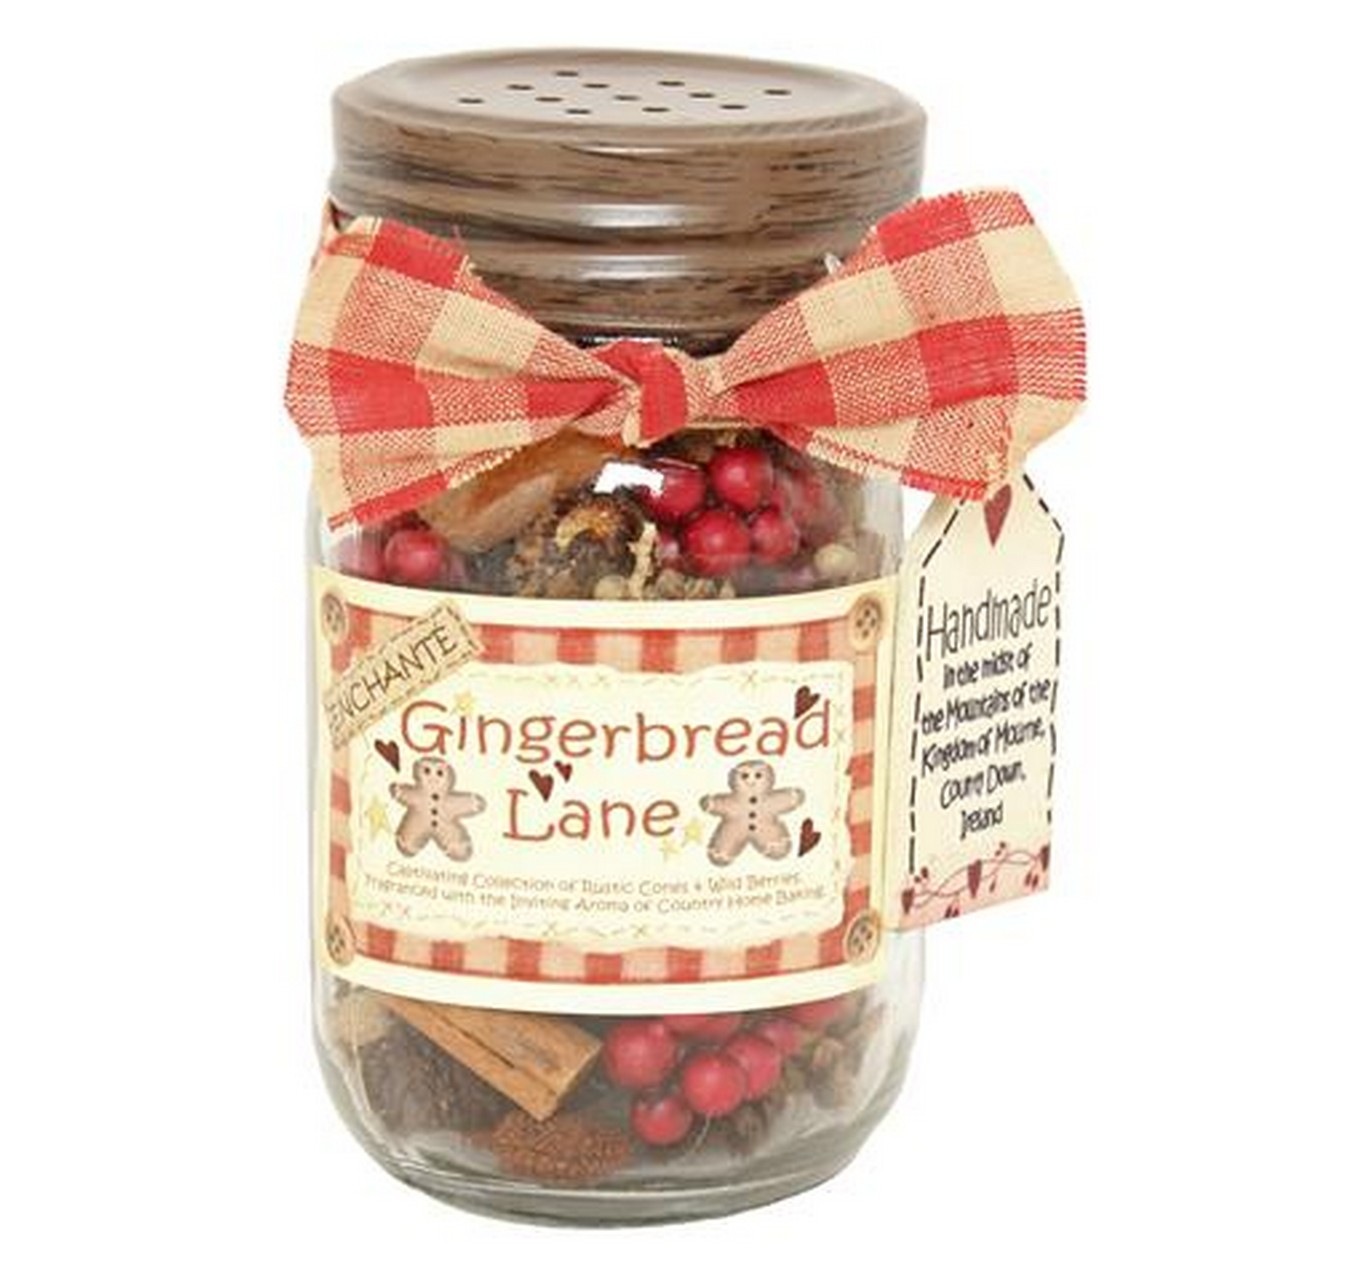 Gingerbread Lane Jar